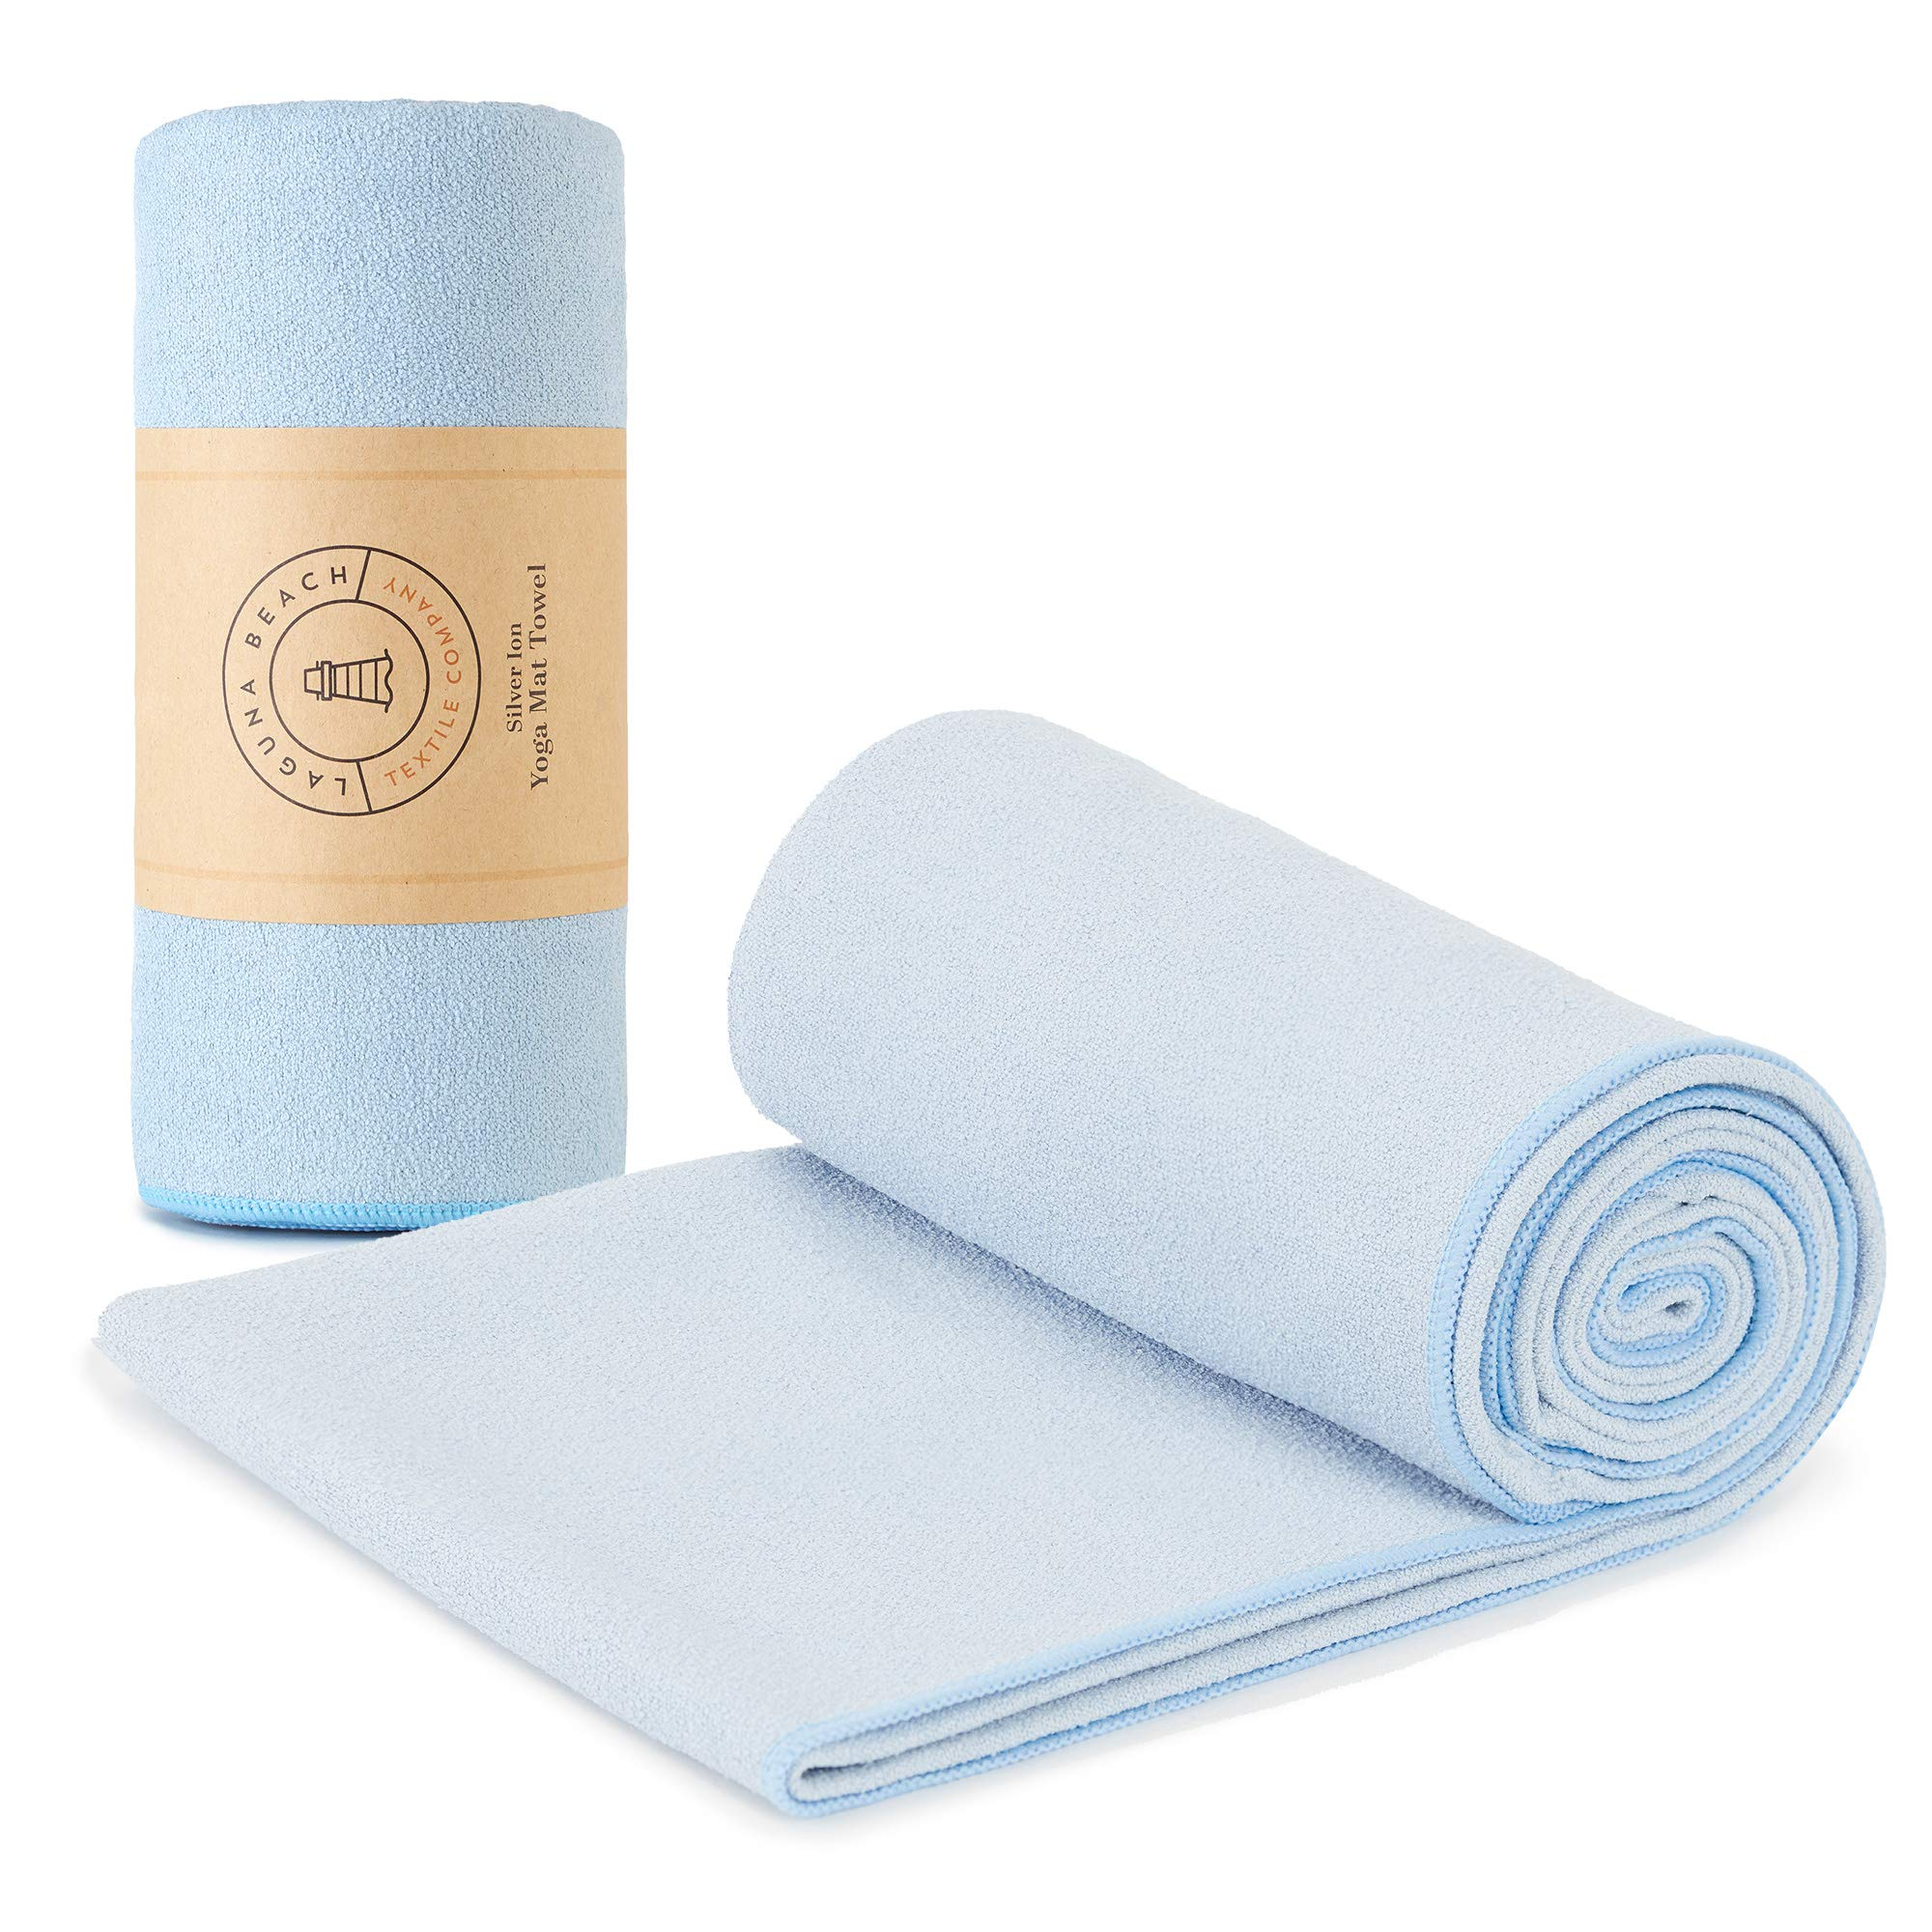 Yoga Mat Towel by Laguna Beach Textile Co | Baby Blue | Odorless, Antimicrobial/Antibacterial | Sweat Absorbent, Non-Slip Bikram Hot Yoga Towel ...